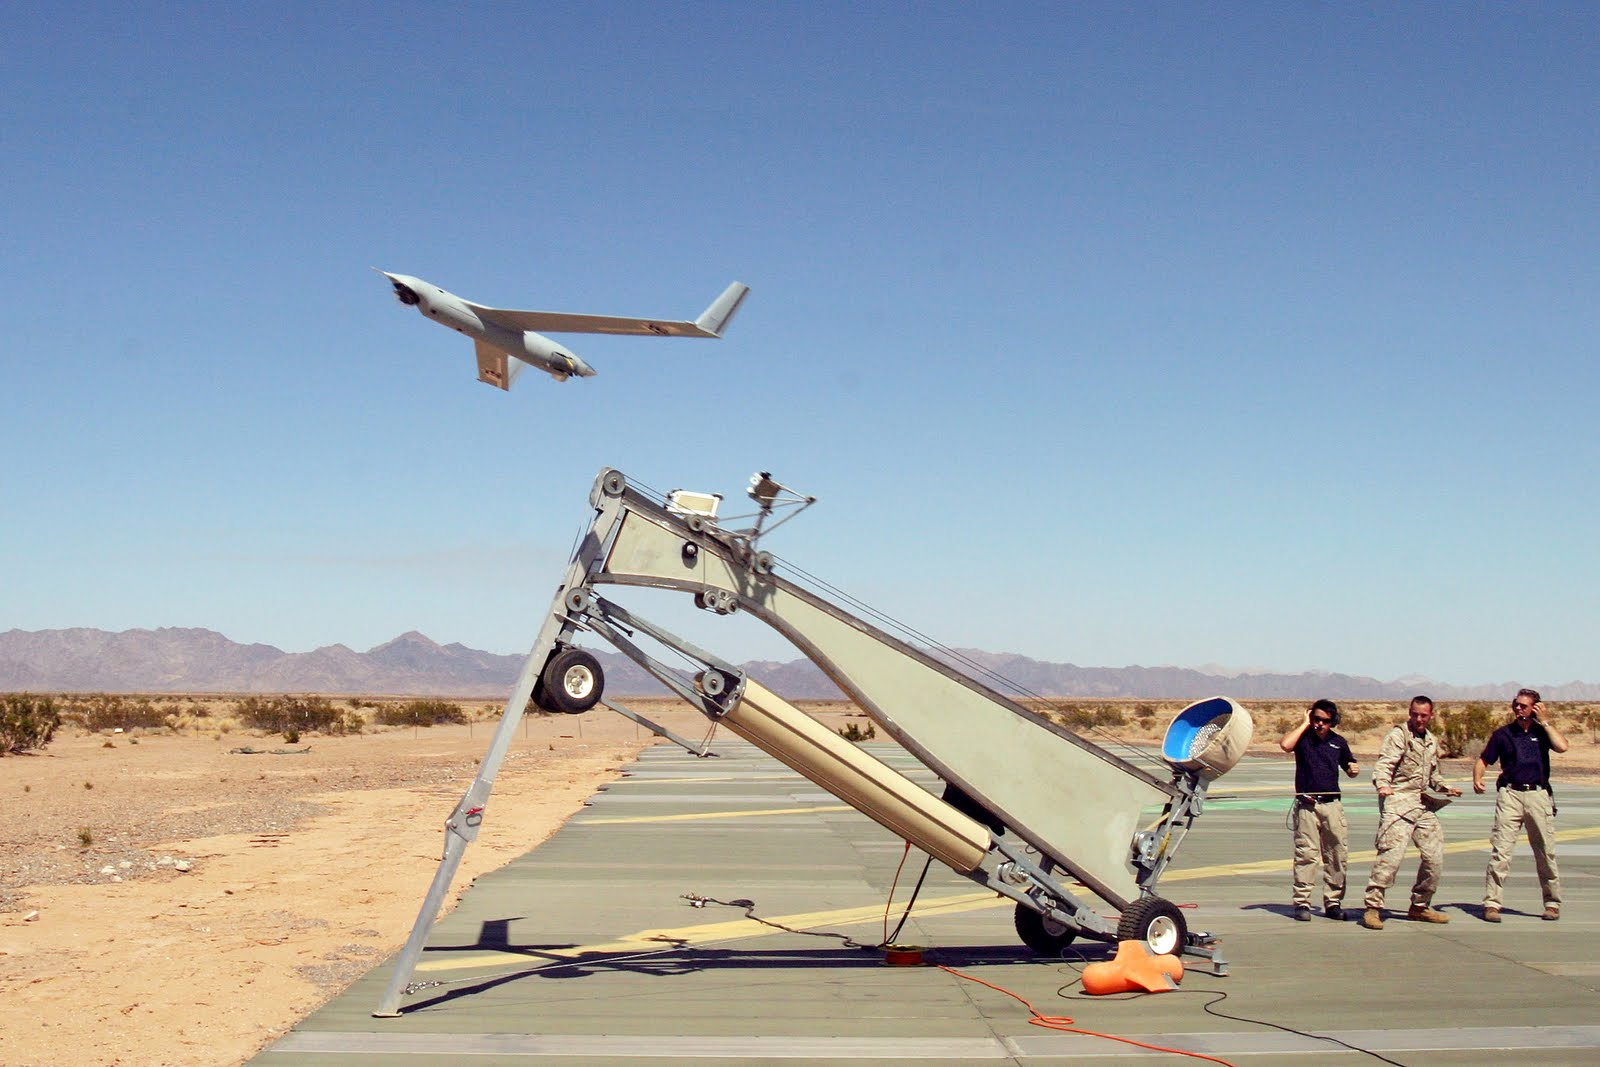 ScanEagle: A Small Drone Making a Big Impact